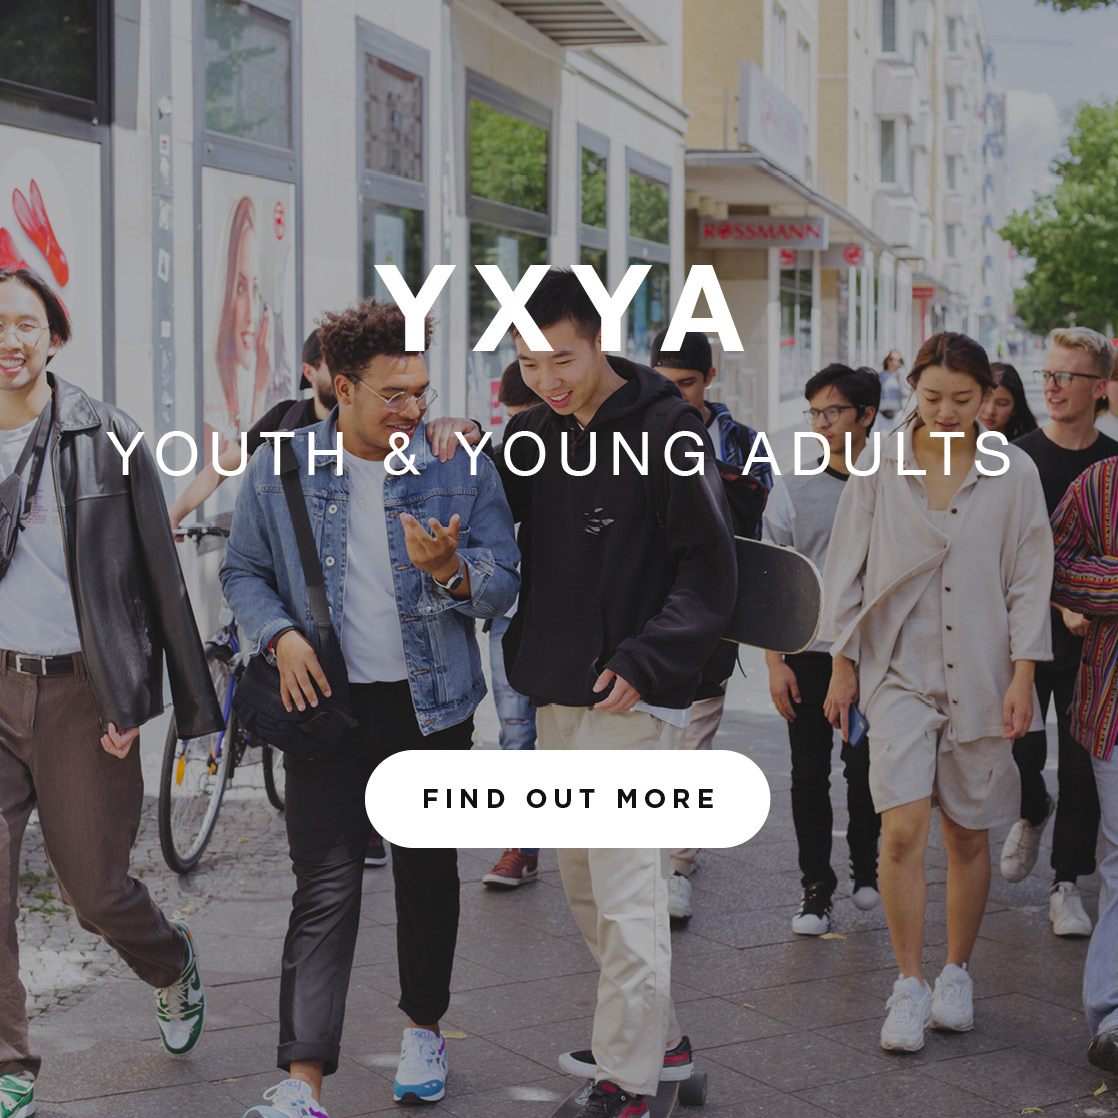 YXYA – Find out more